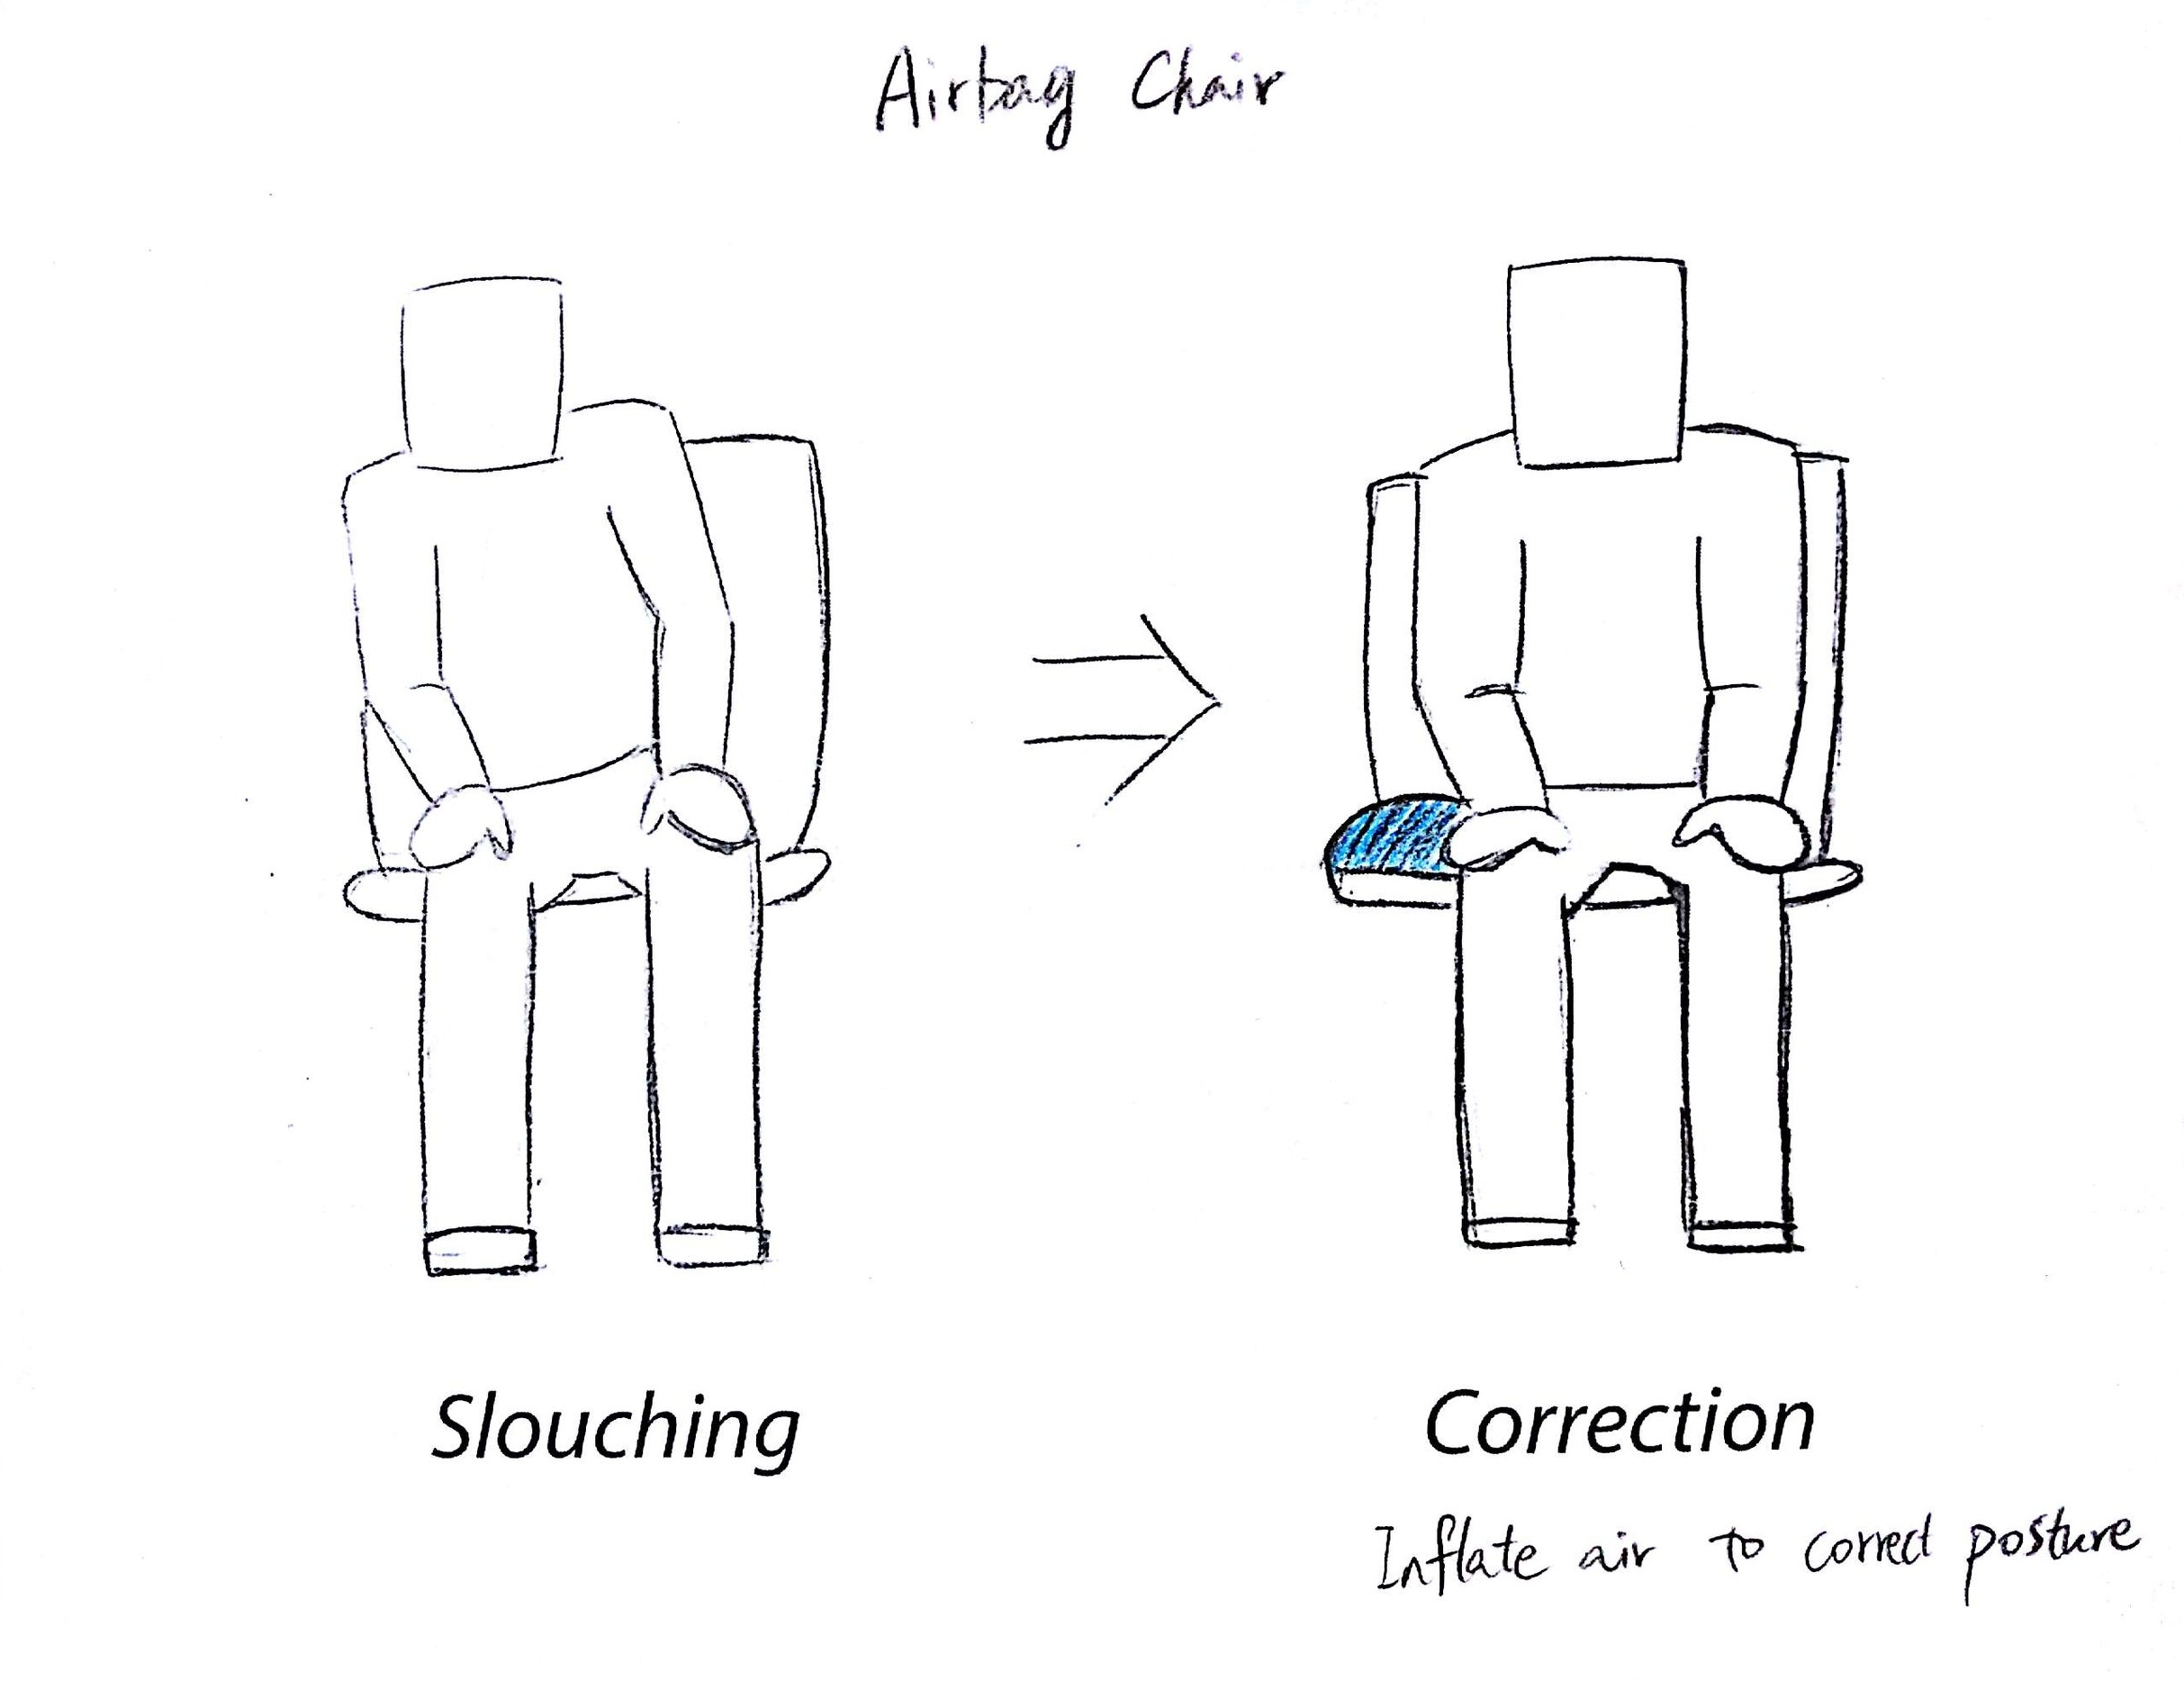 3. An airbag chair inflating to correct posture